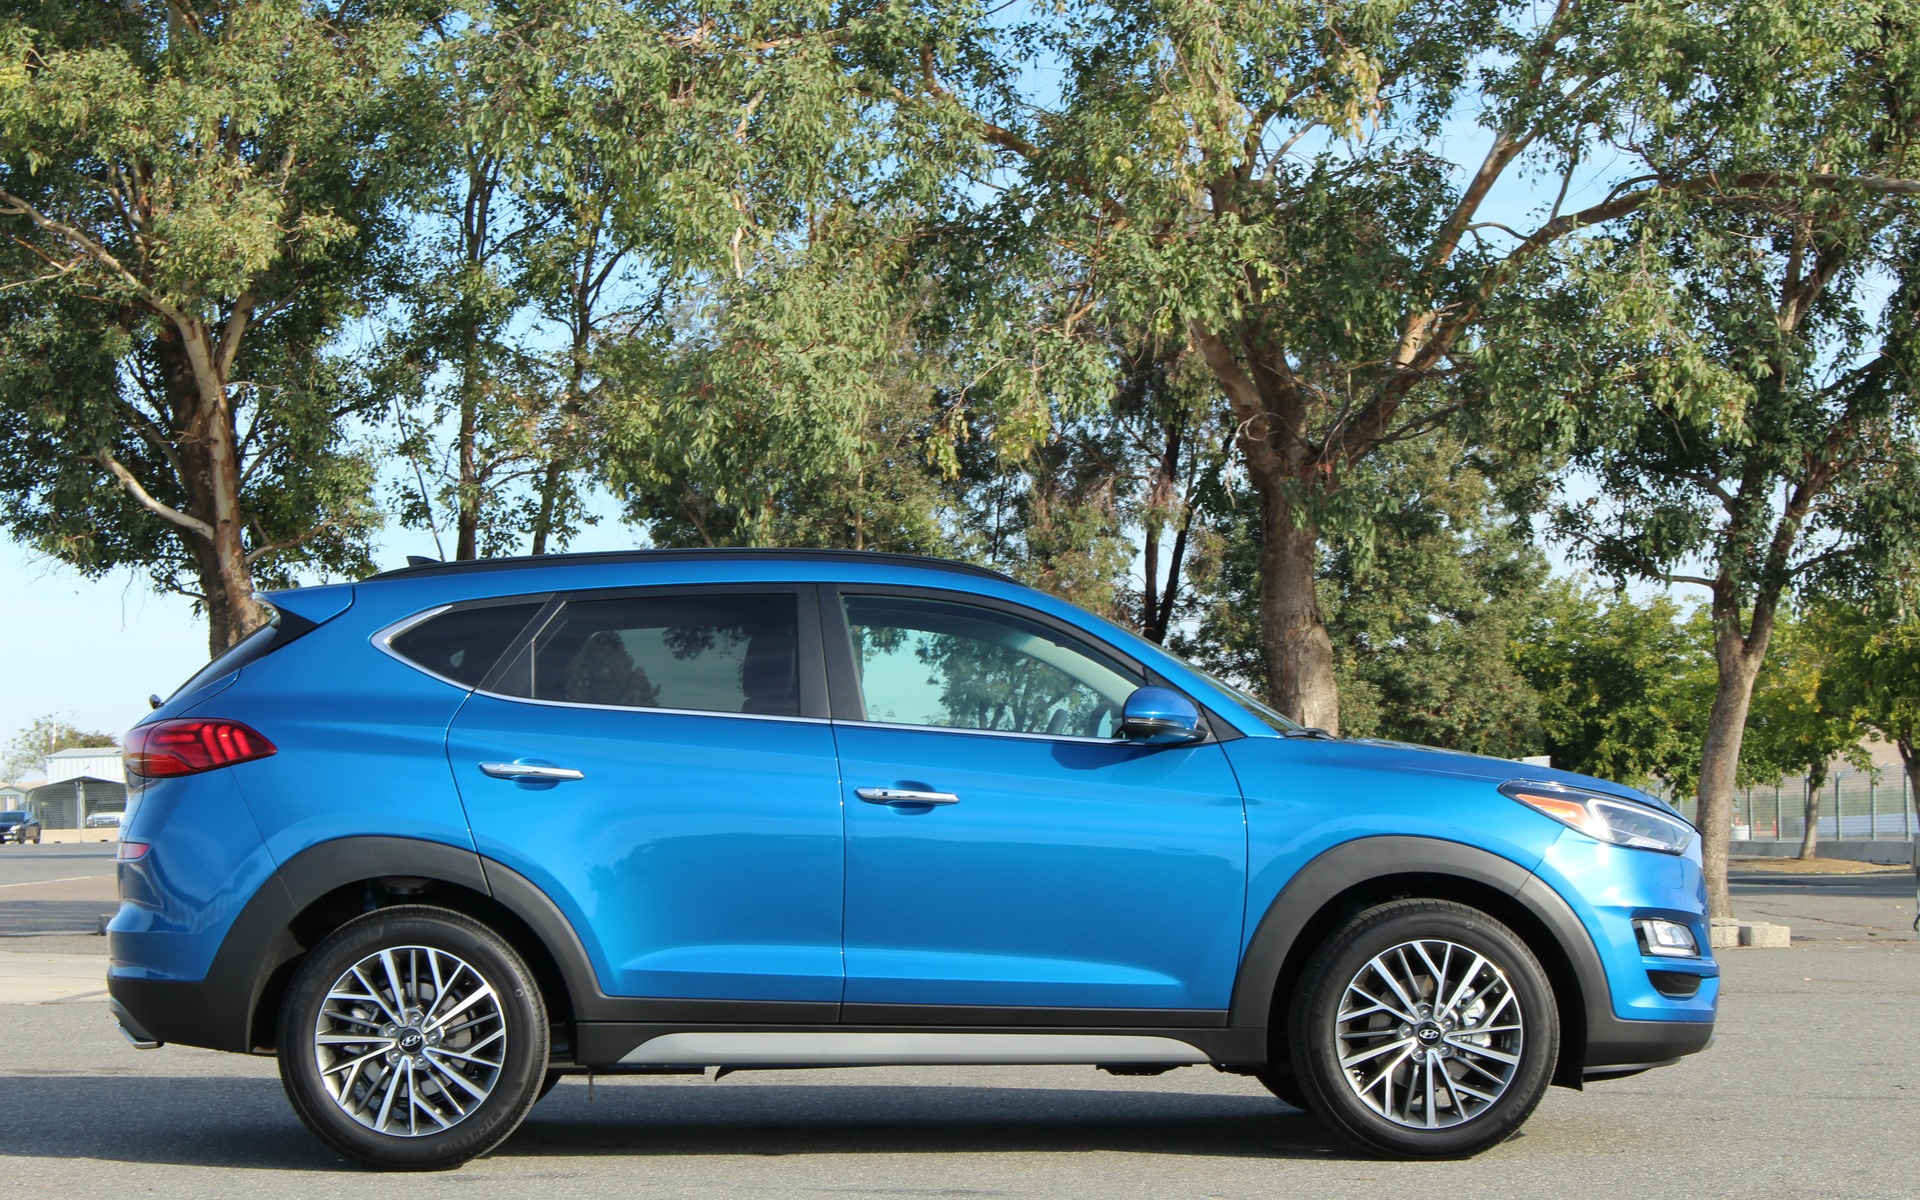 2019 Hyundai Tucson: Staying in the Game - The Car Guide